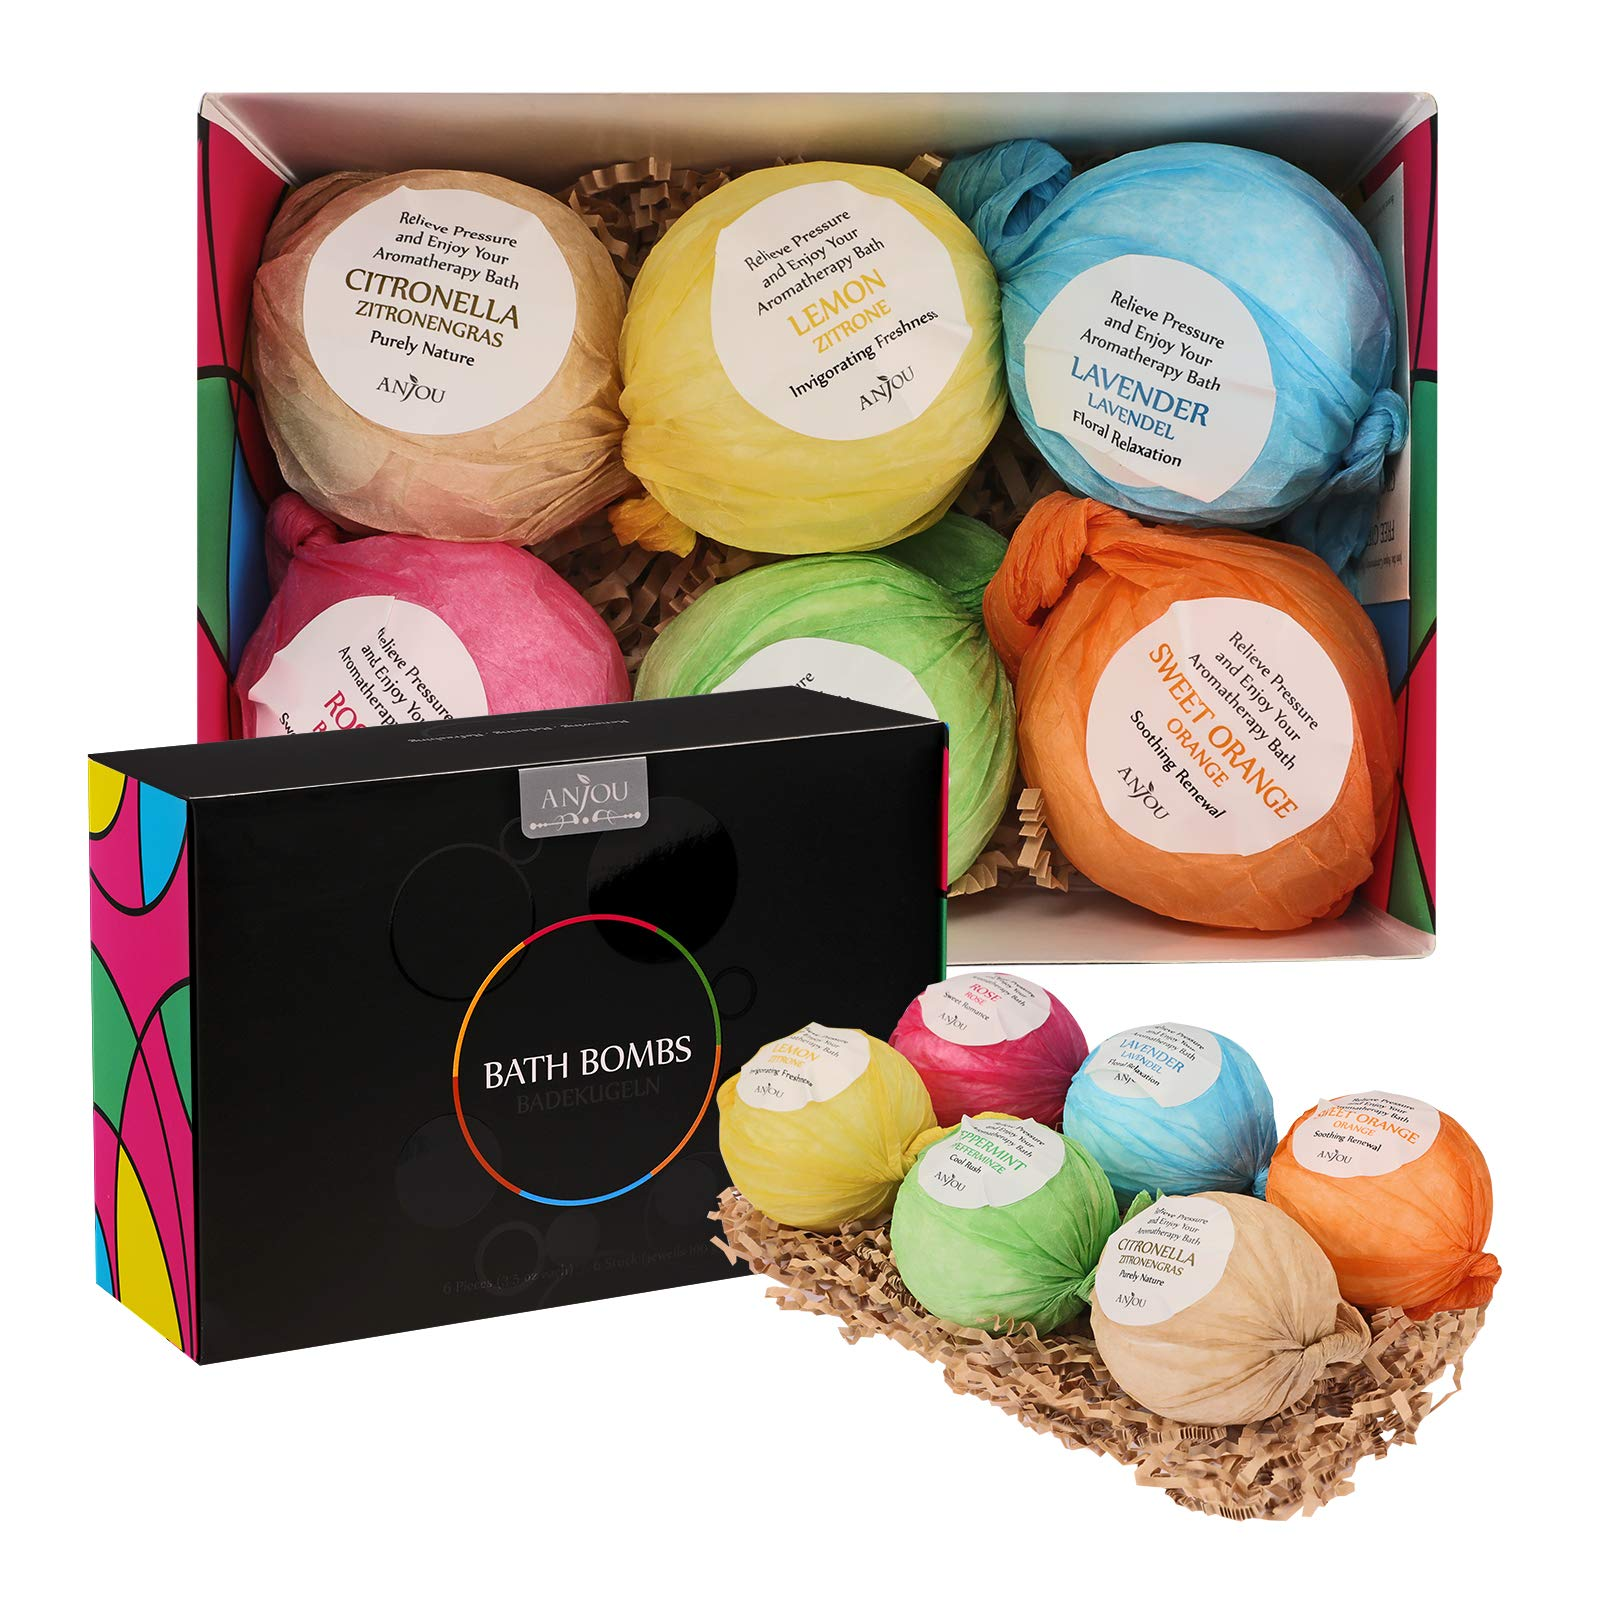 Bath Bombs Set by Anjou, 6 x 100g Bath Bombs Kit, Perfect for Aromatherapy, Relaxation, Moisturizing with Organic and Natural Essential Oils, Jojoba Oil and Shea Butter